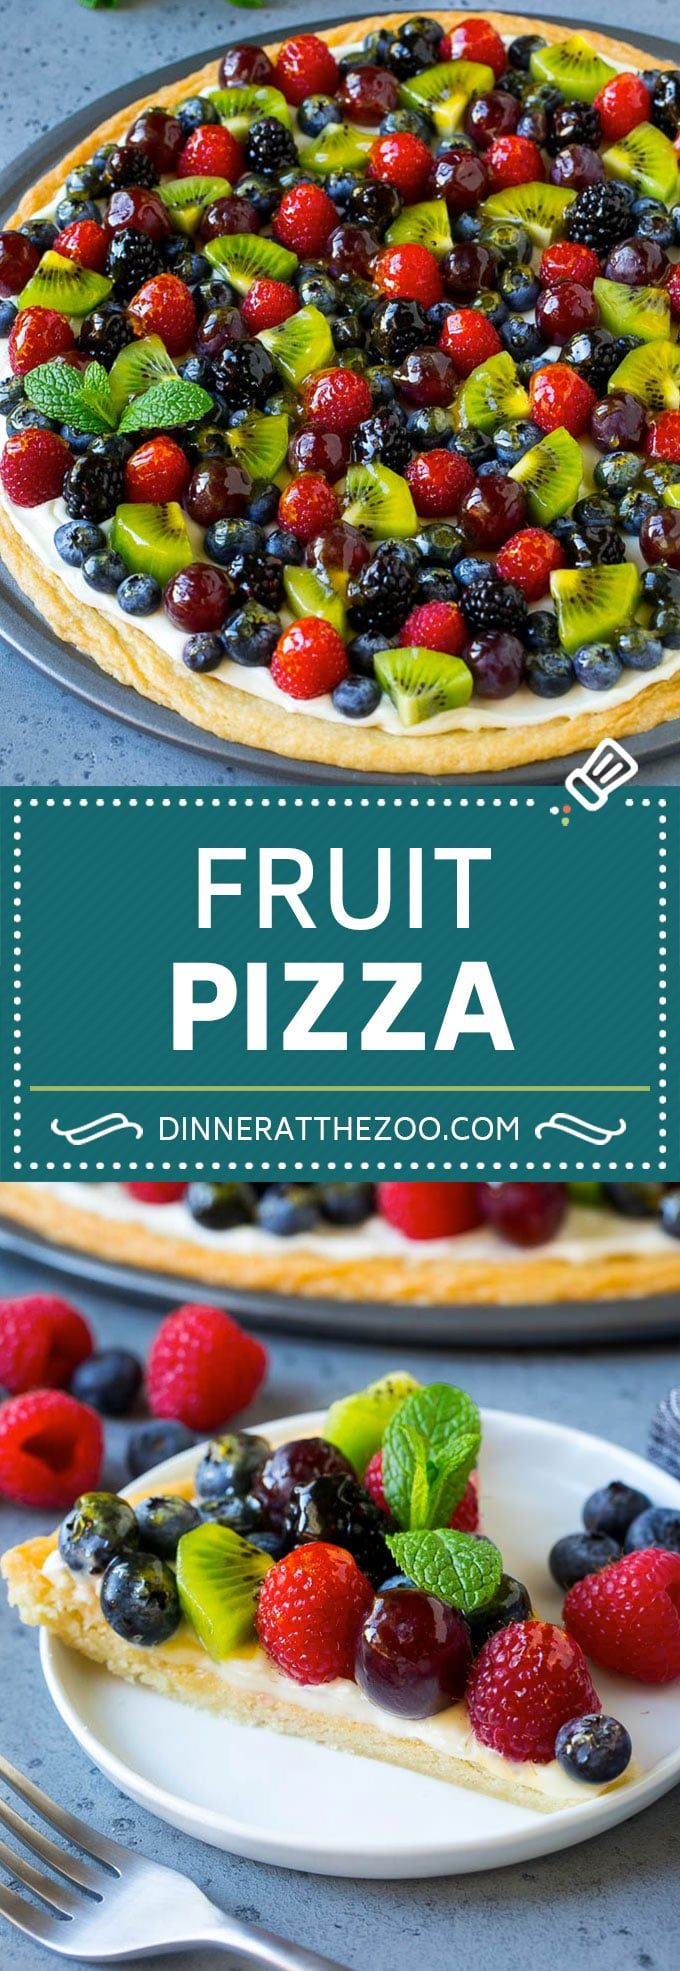 Photo of Fruit Pizza